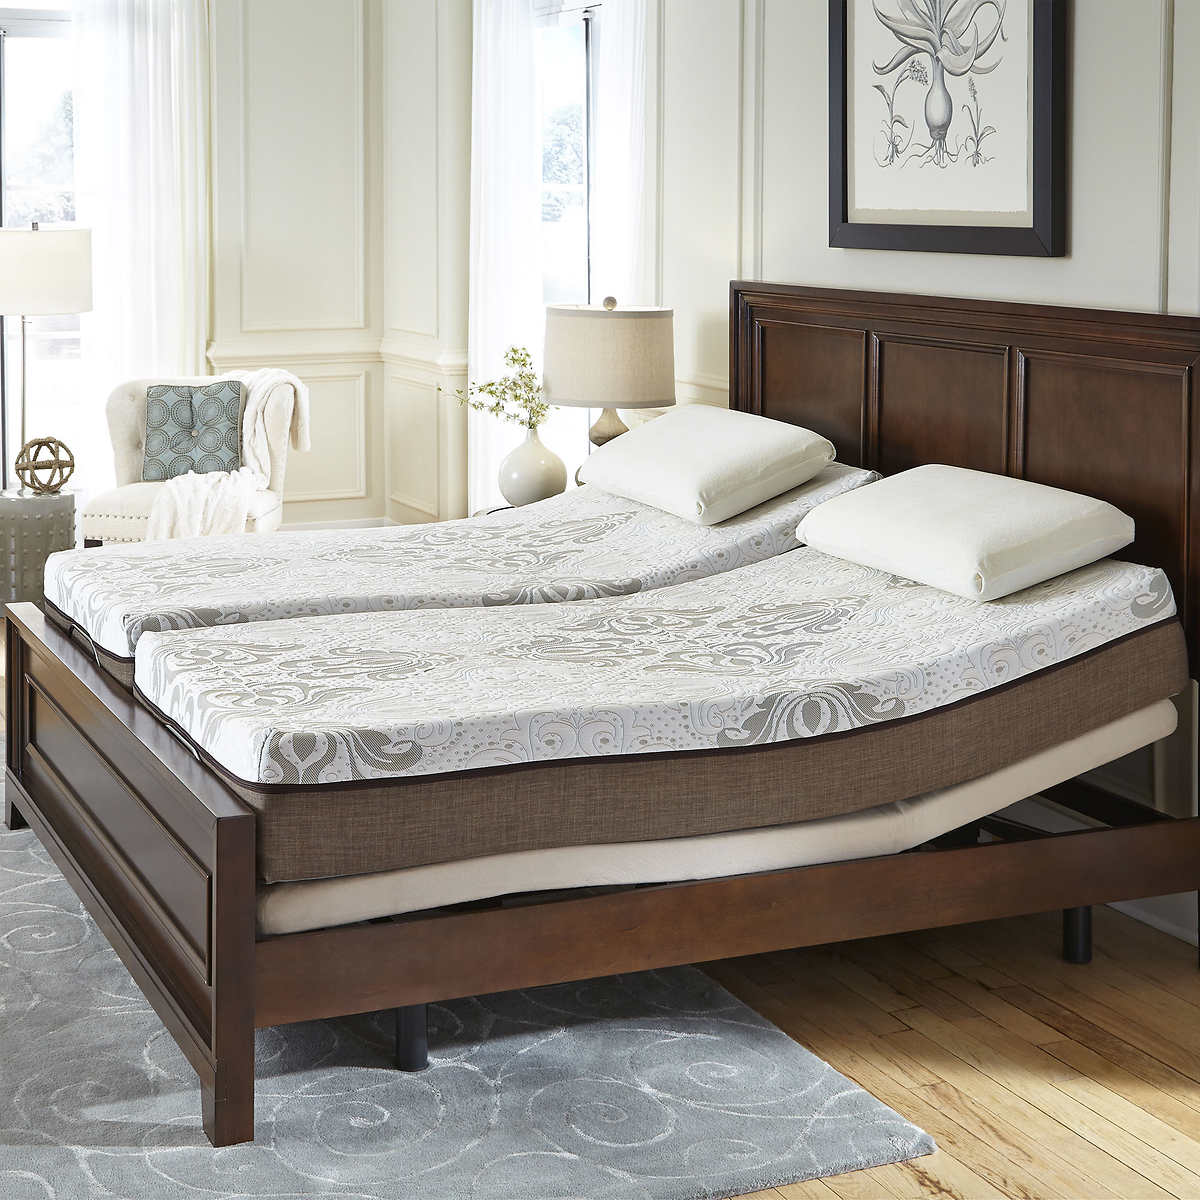 sleep science marina 10 split cal king memory foam mattress with adjustable base